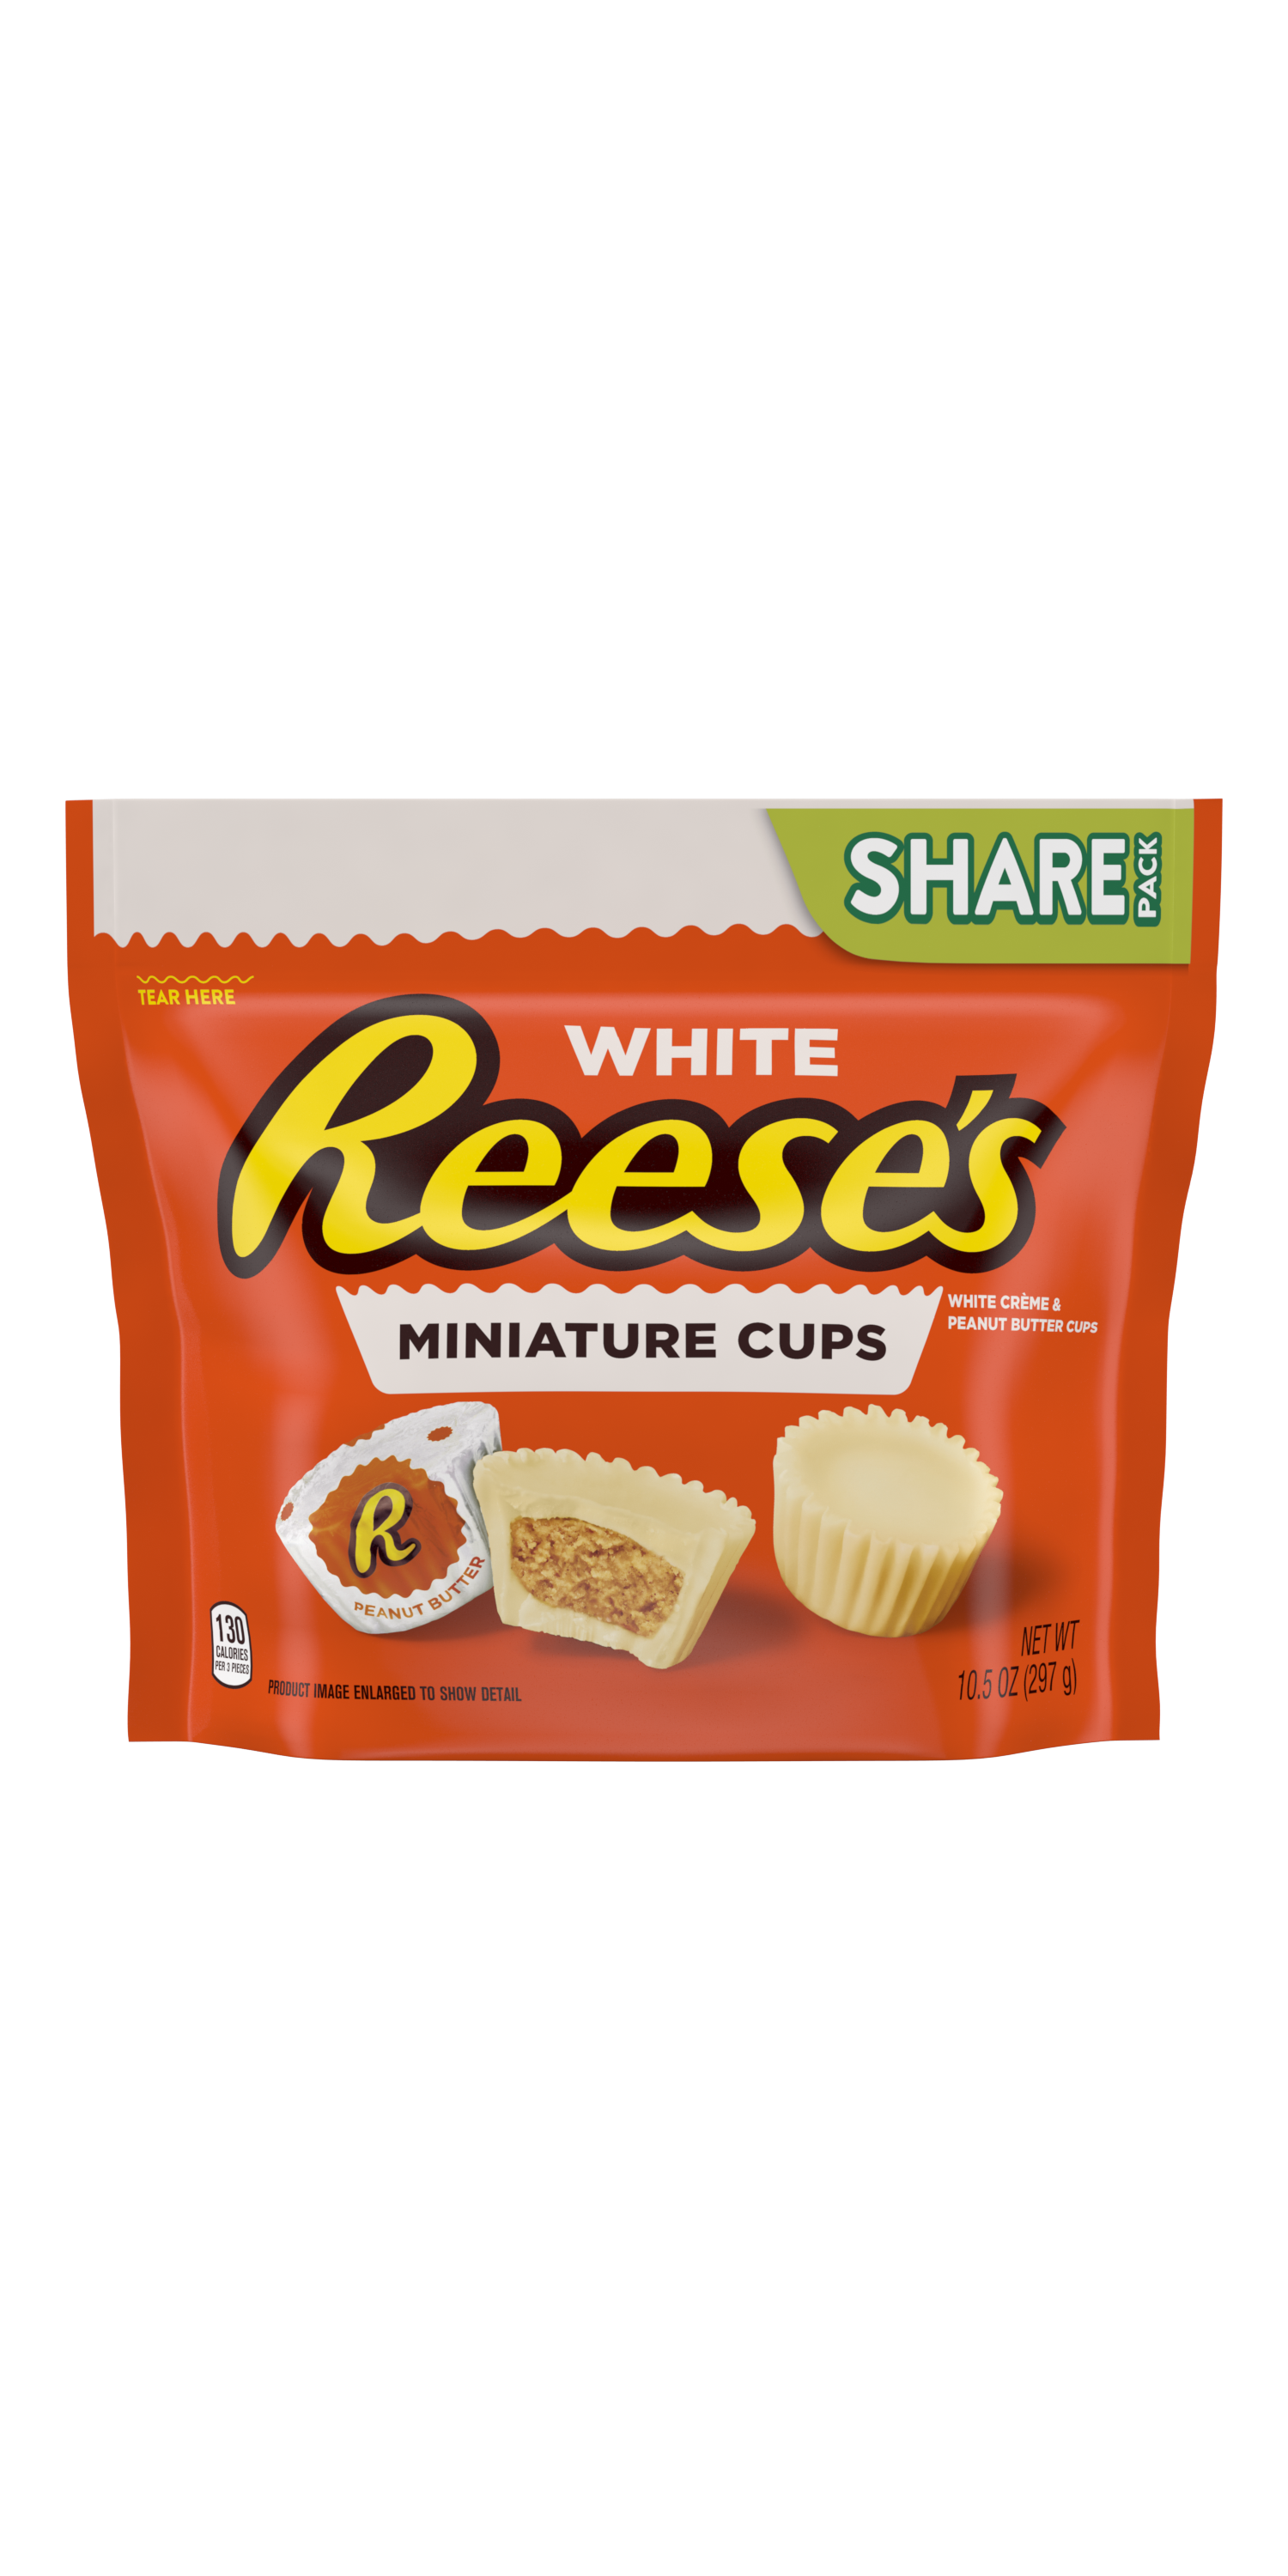 REESE'S Miniatures White Creme Peanut Butter Cups, 10.5 oz bag - Front of Package